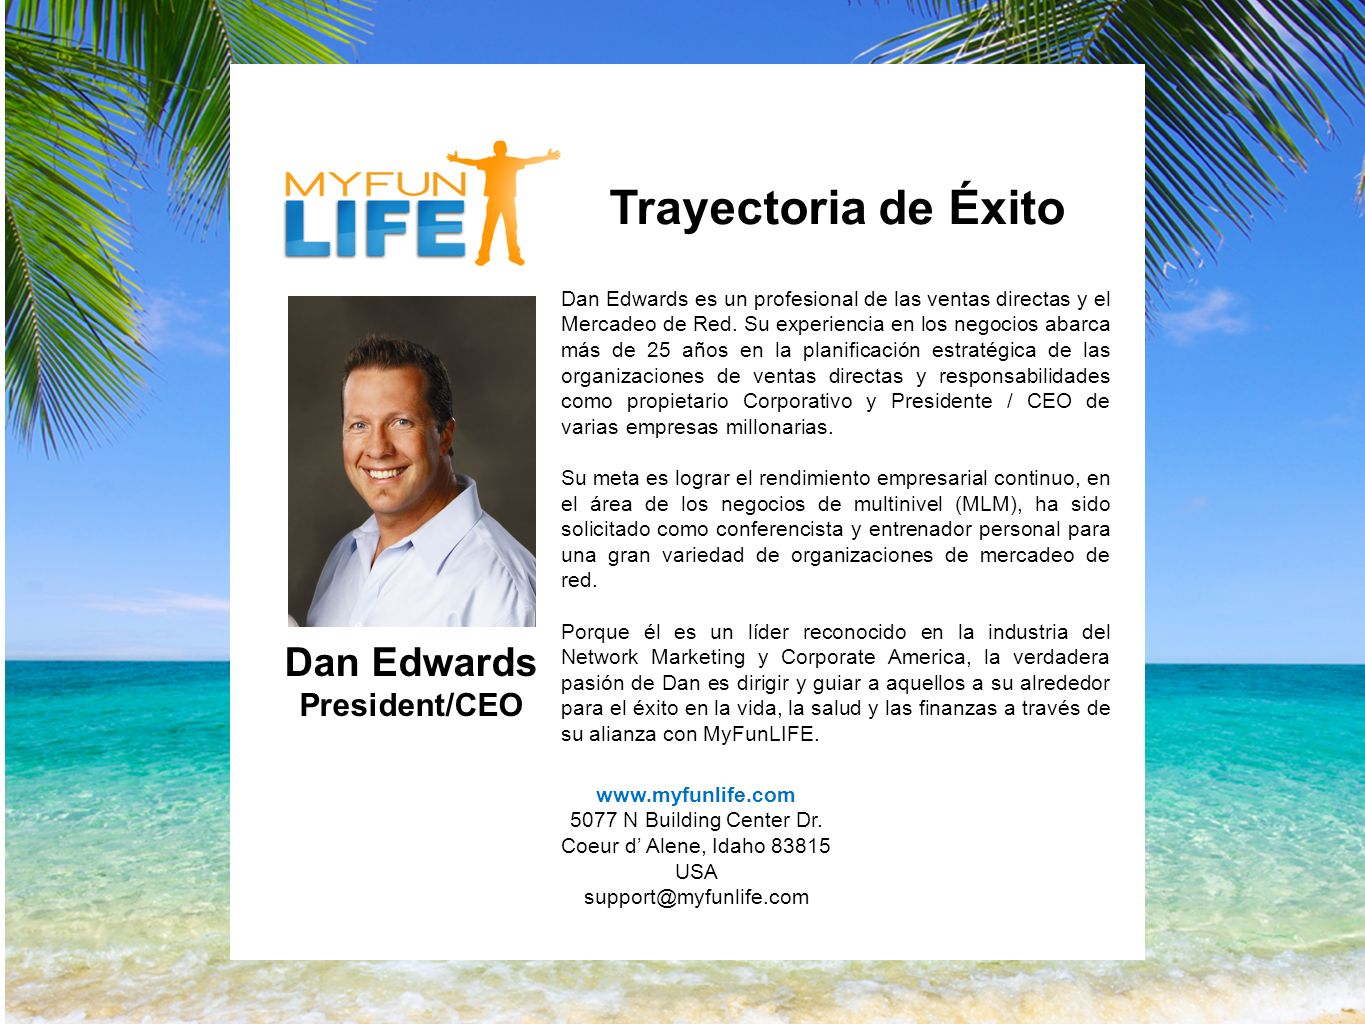 Trayectoria de Exito Dan is an accomplished professional Direct Sales & Marketing.